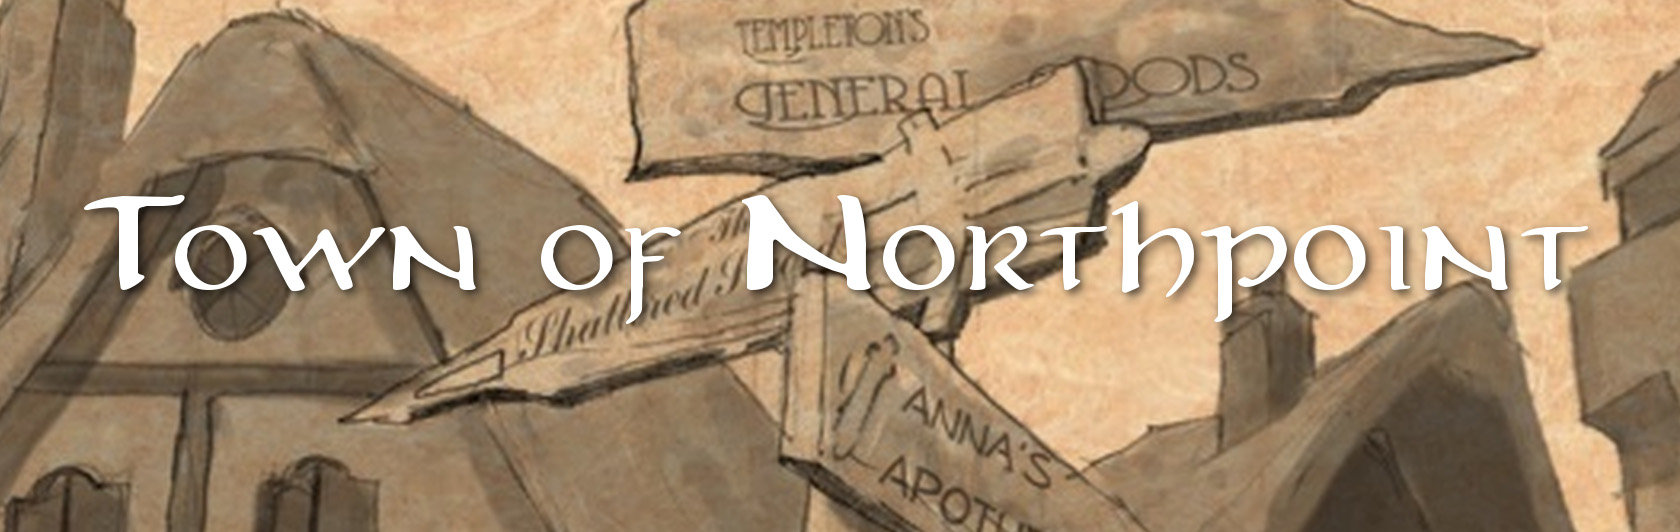 LoT_Wiki_Banner_Northpoint.jpg